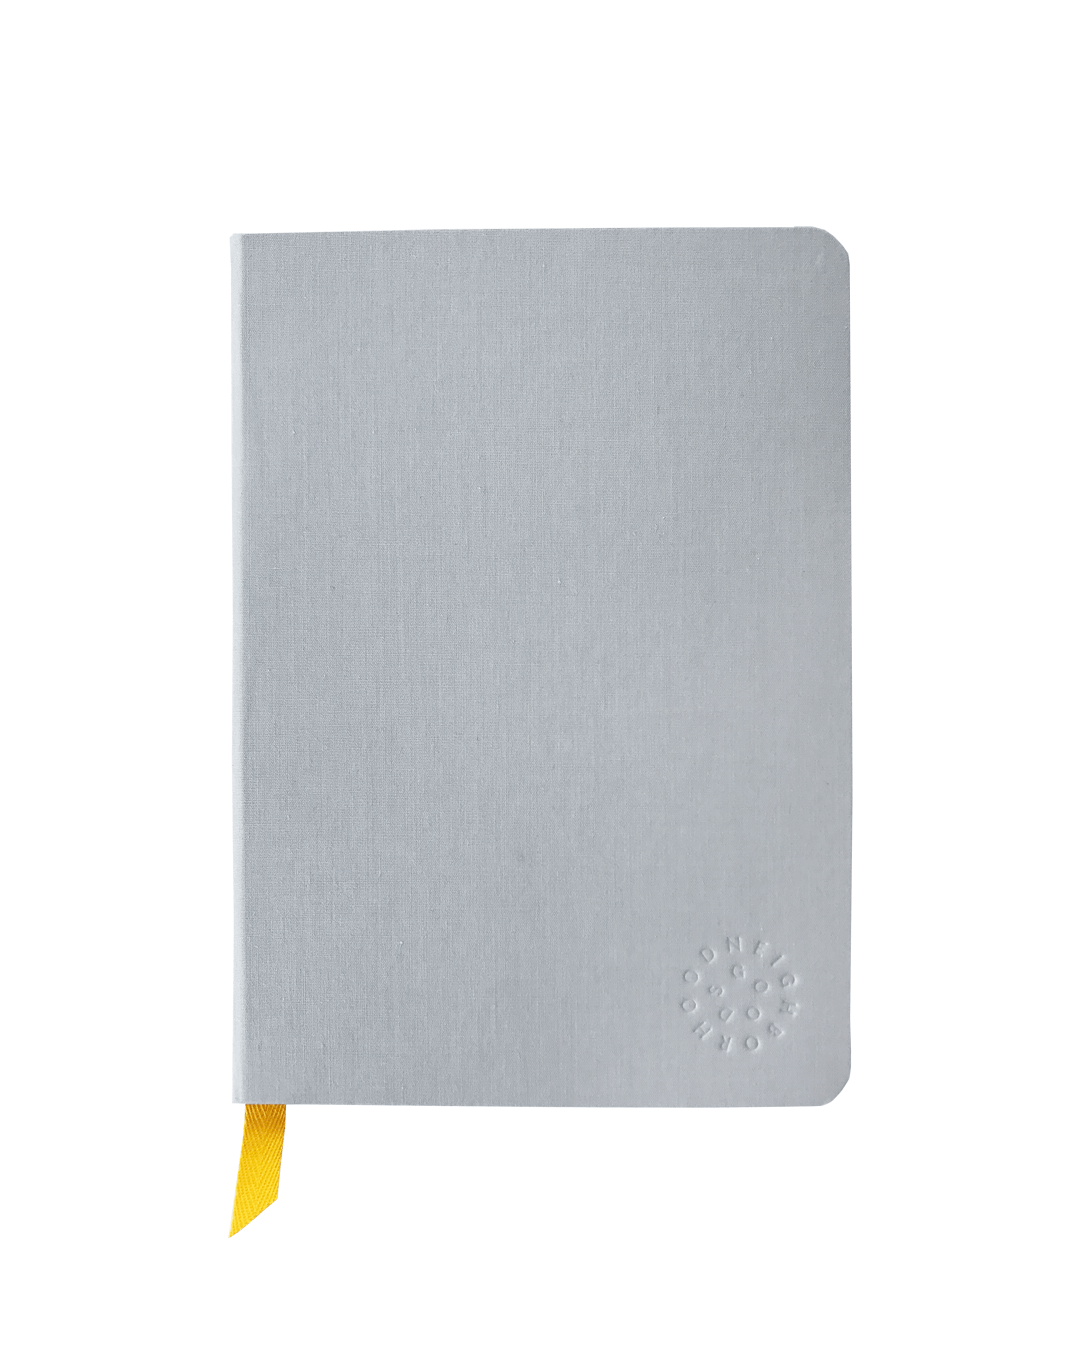 Hardcover Notebook / Neighborhood Goods